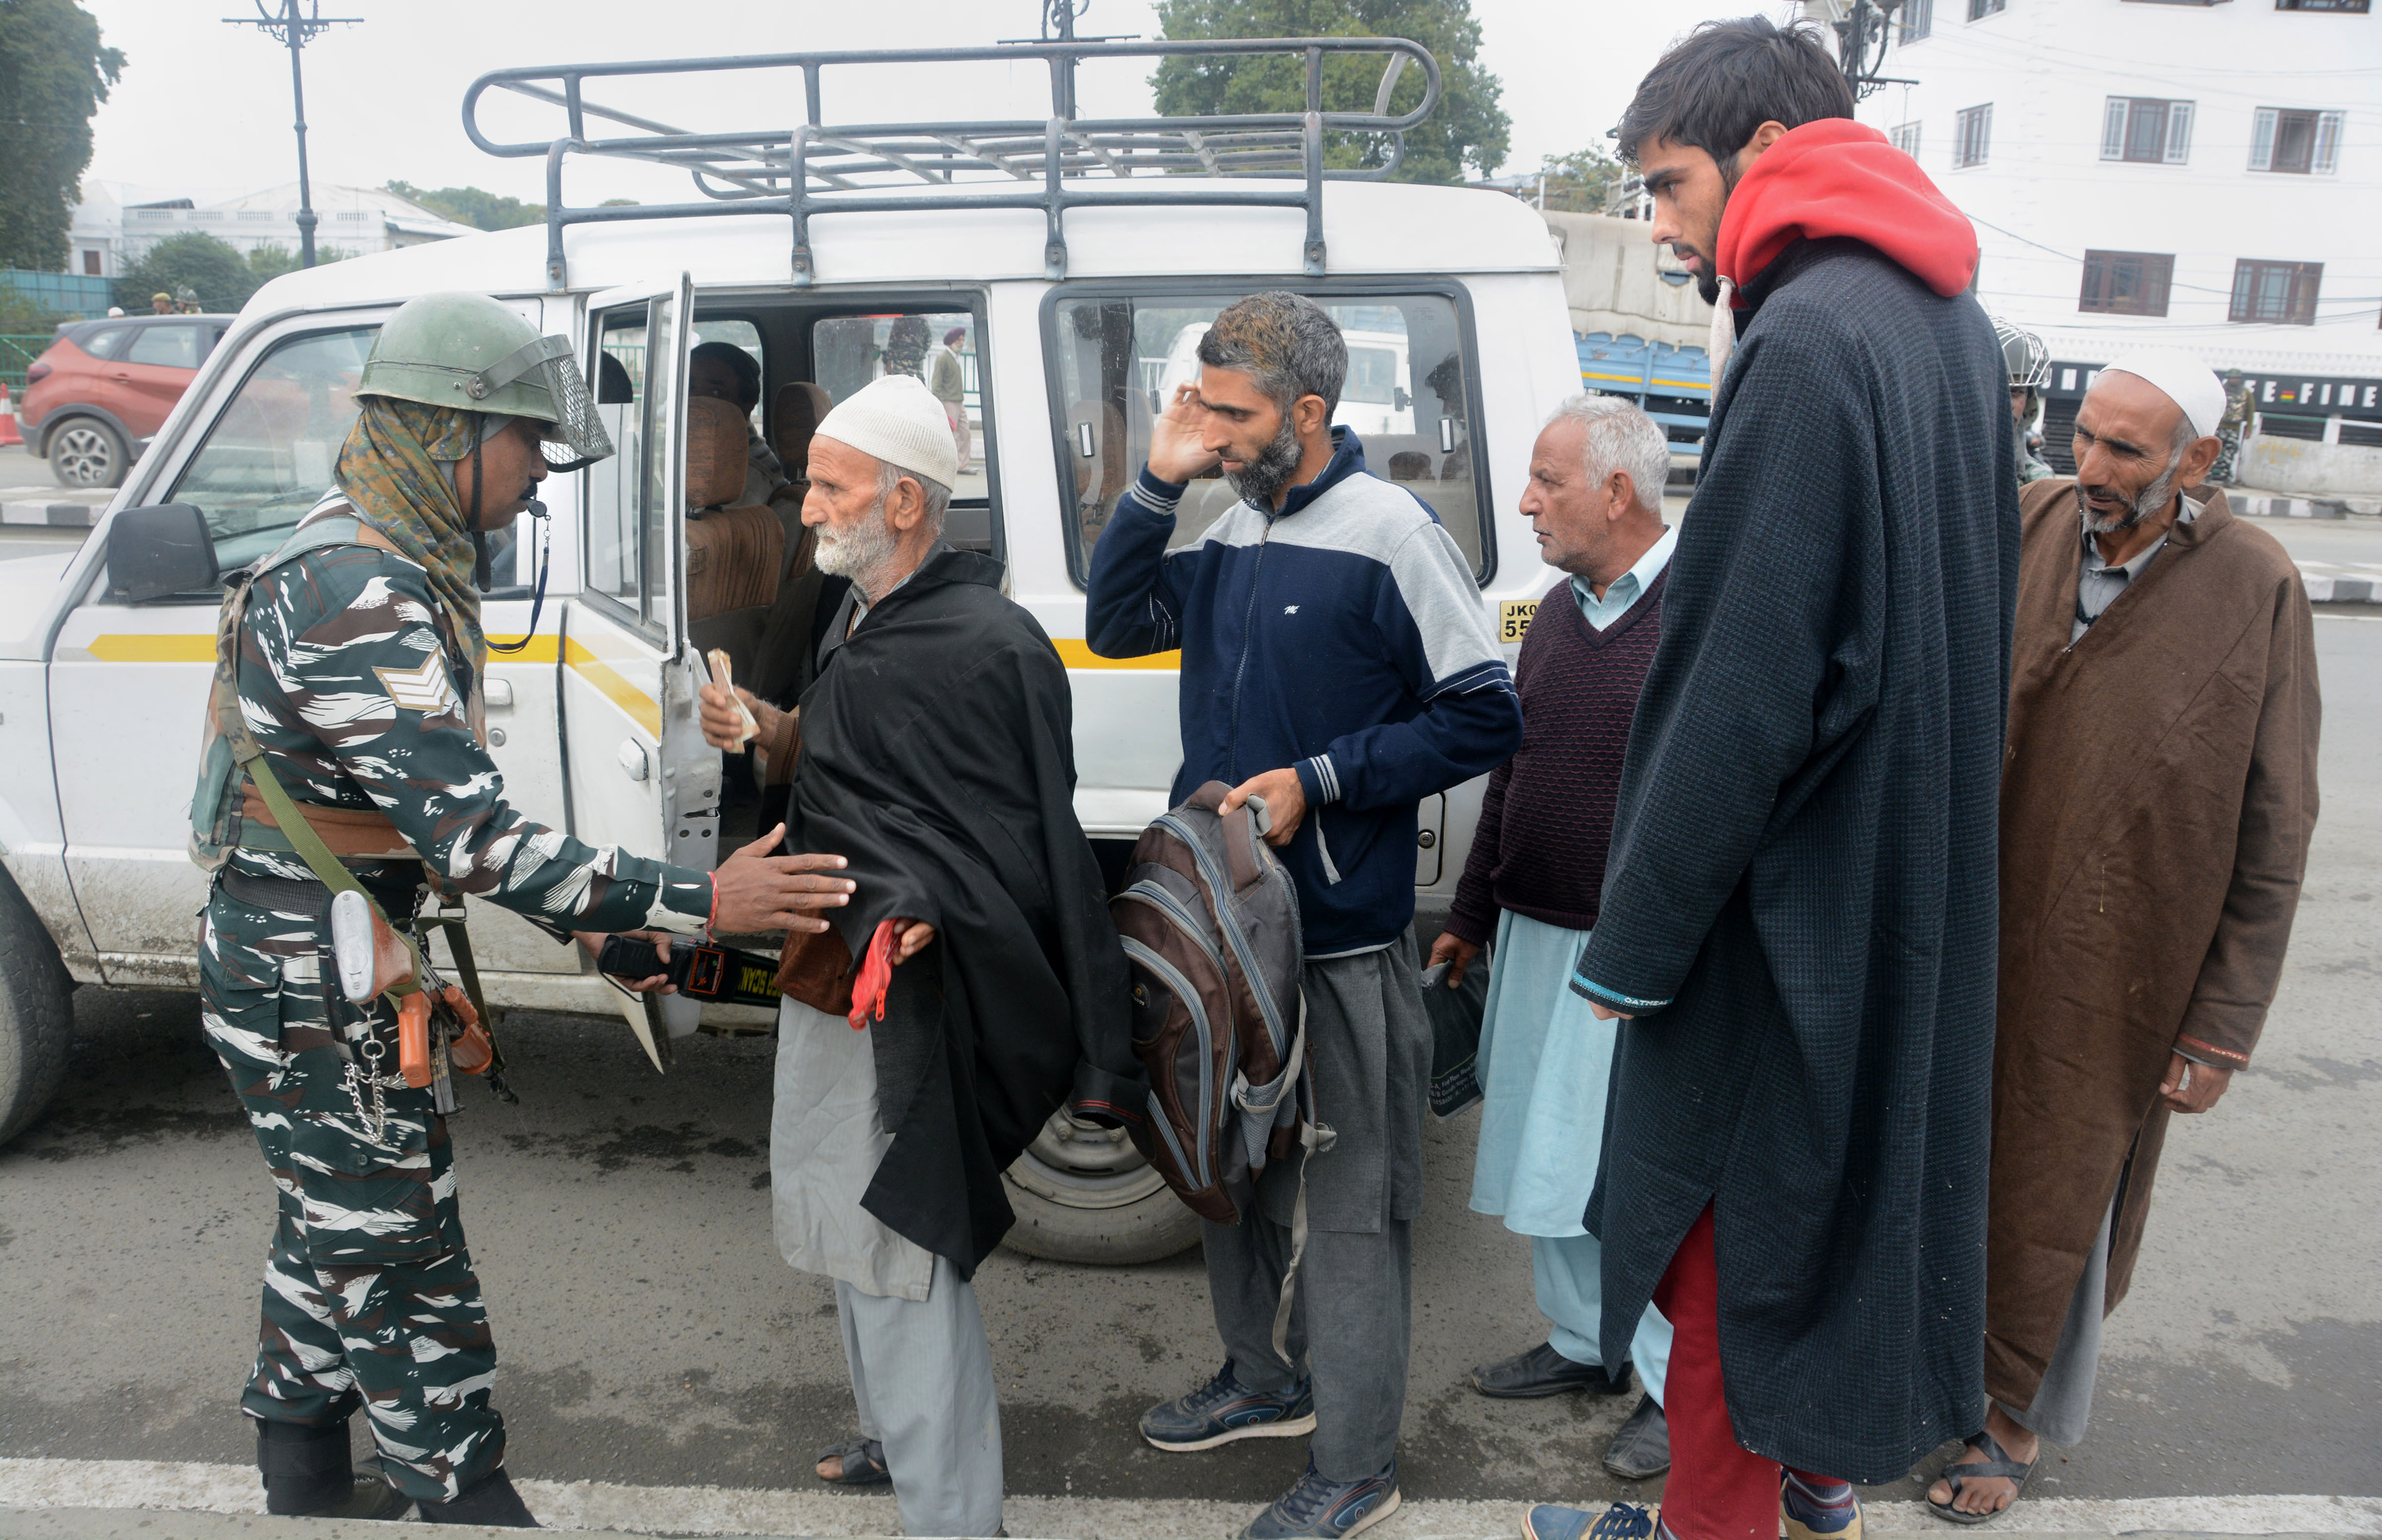 In this file picture from Monday, October 7, 2019, a security person can be seen frisking passengers of a private vehicle during a high alert, in Srinagar. Security has been beefed up in the city after a grenade attack injured seven people on Sunday, October 13, 2019